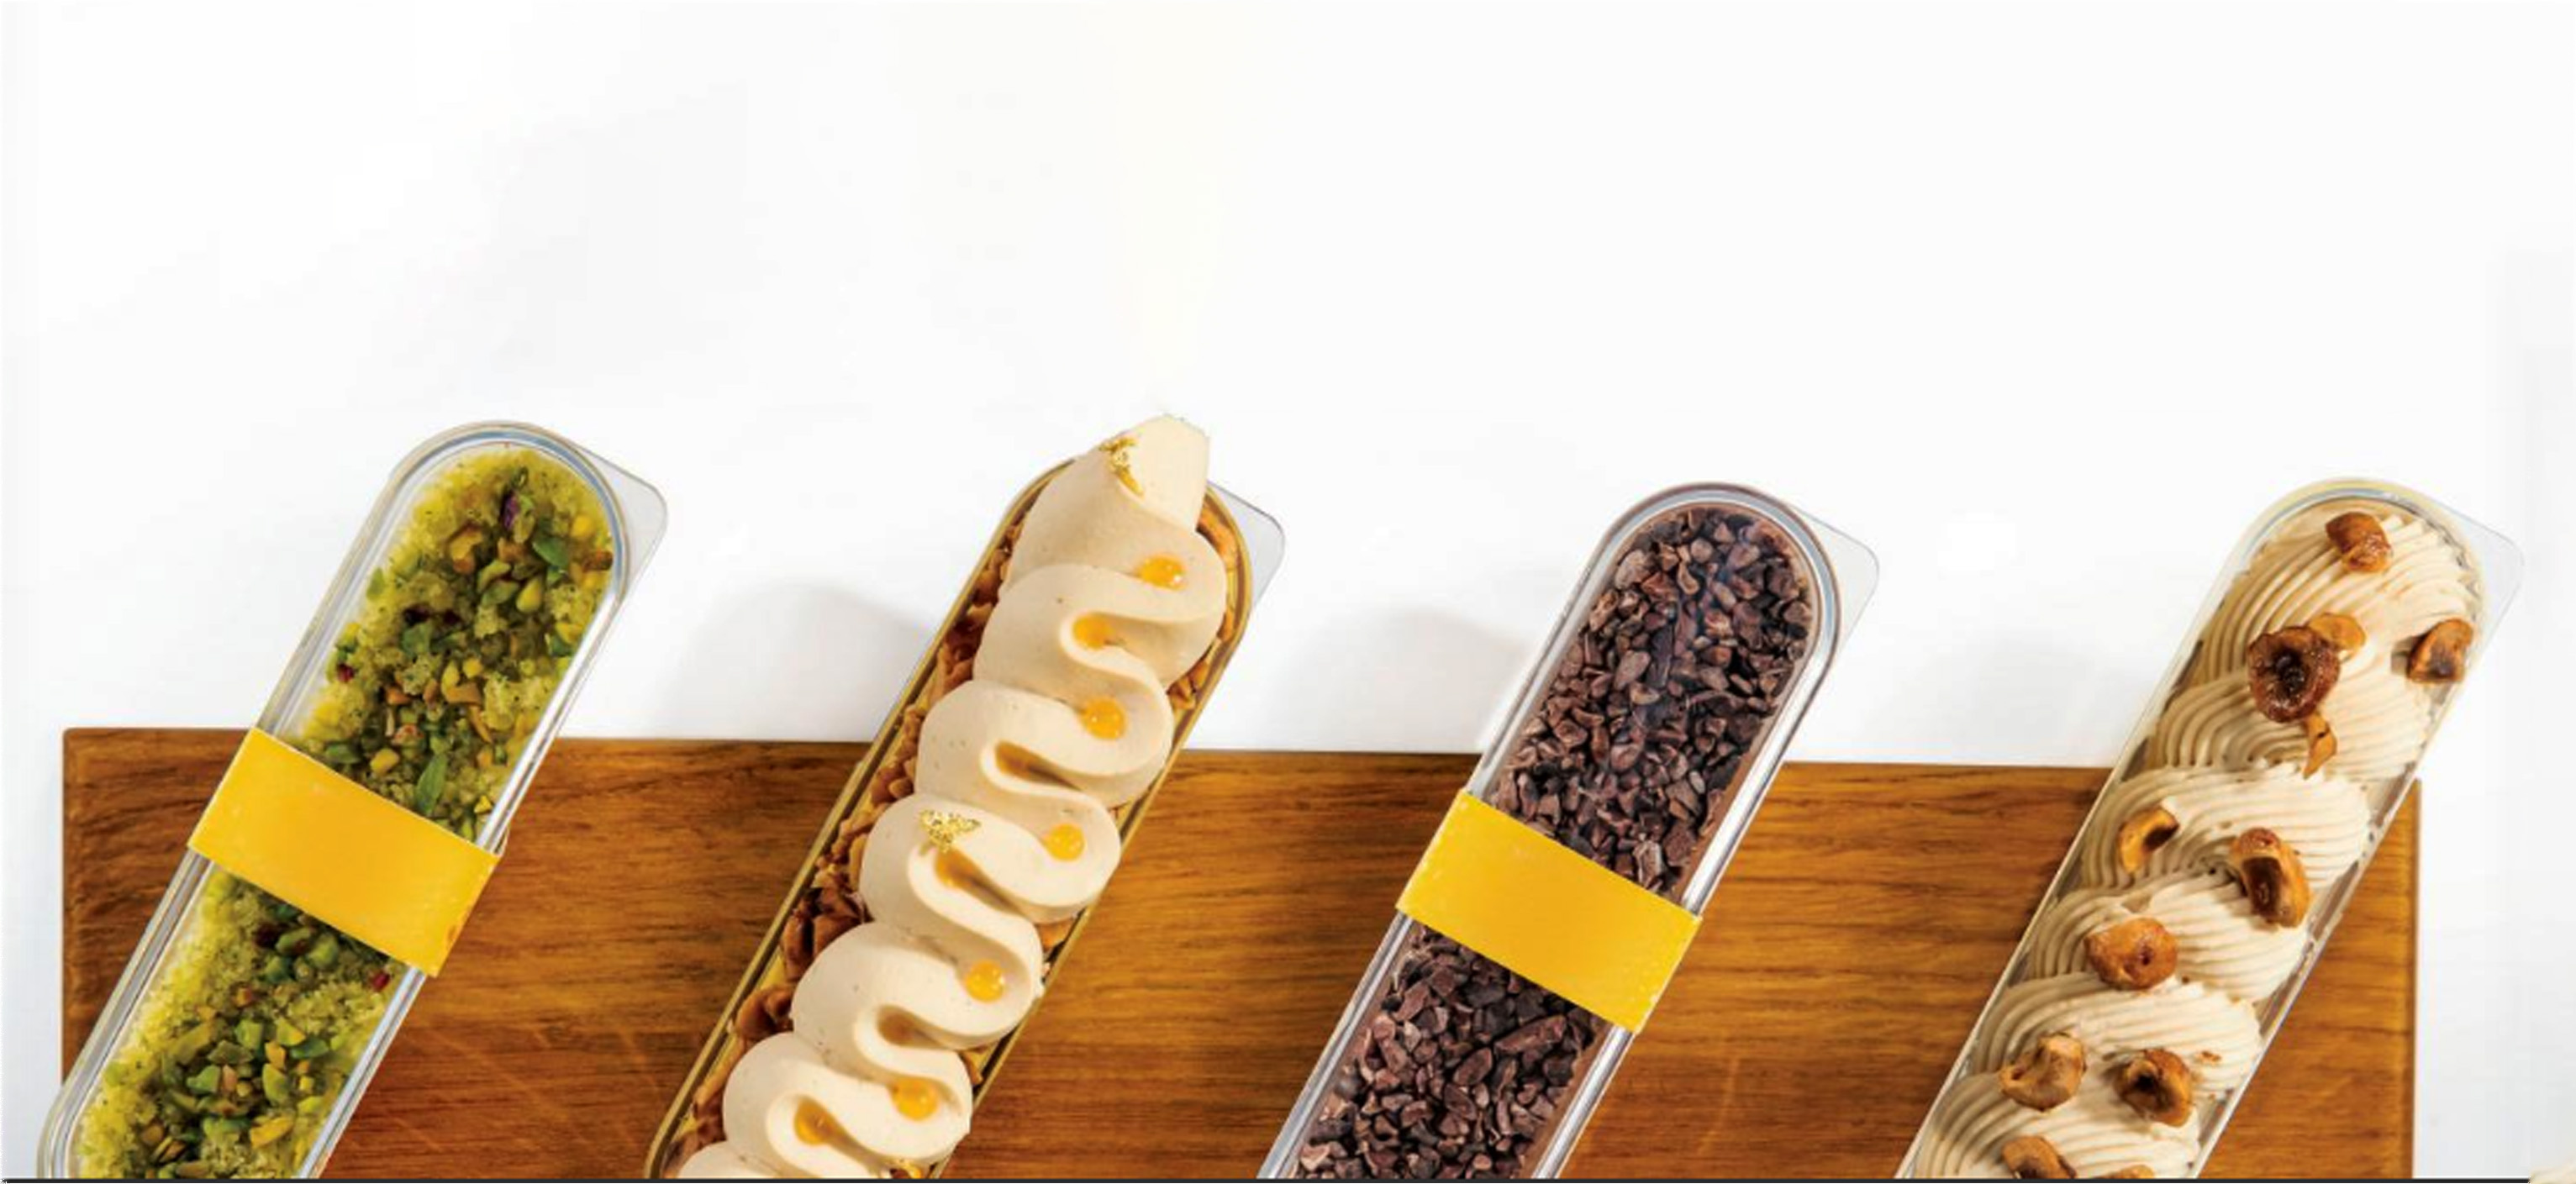 Mini Dishes and Verrines Cups